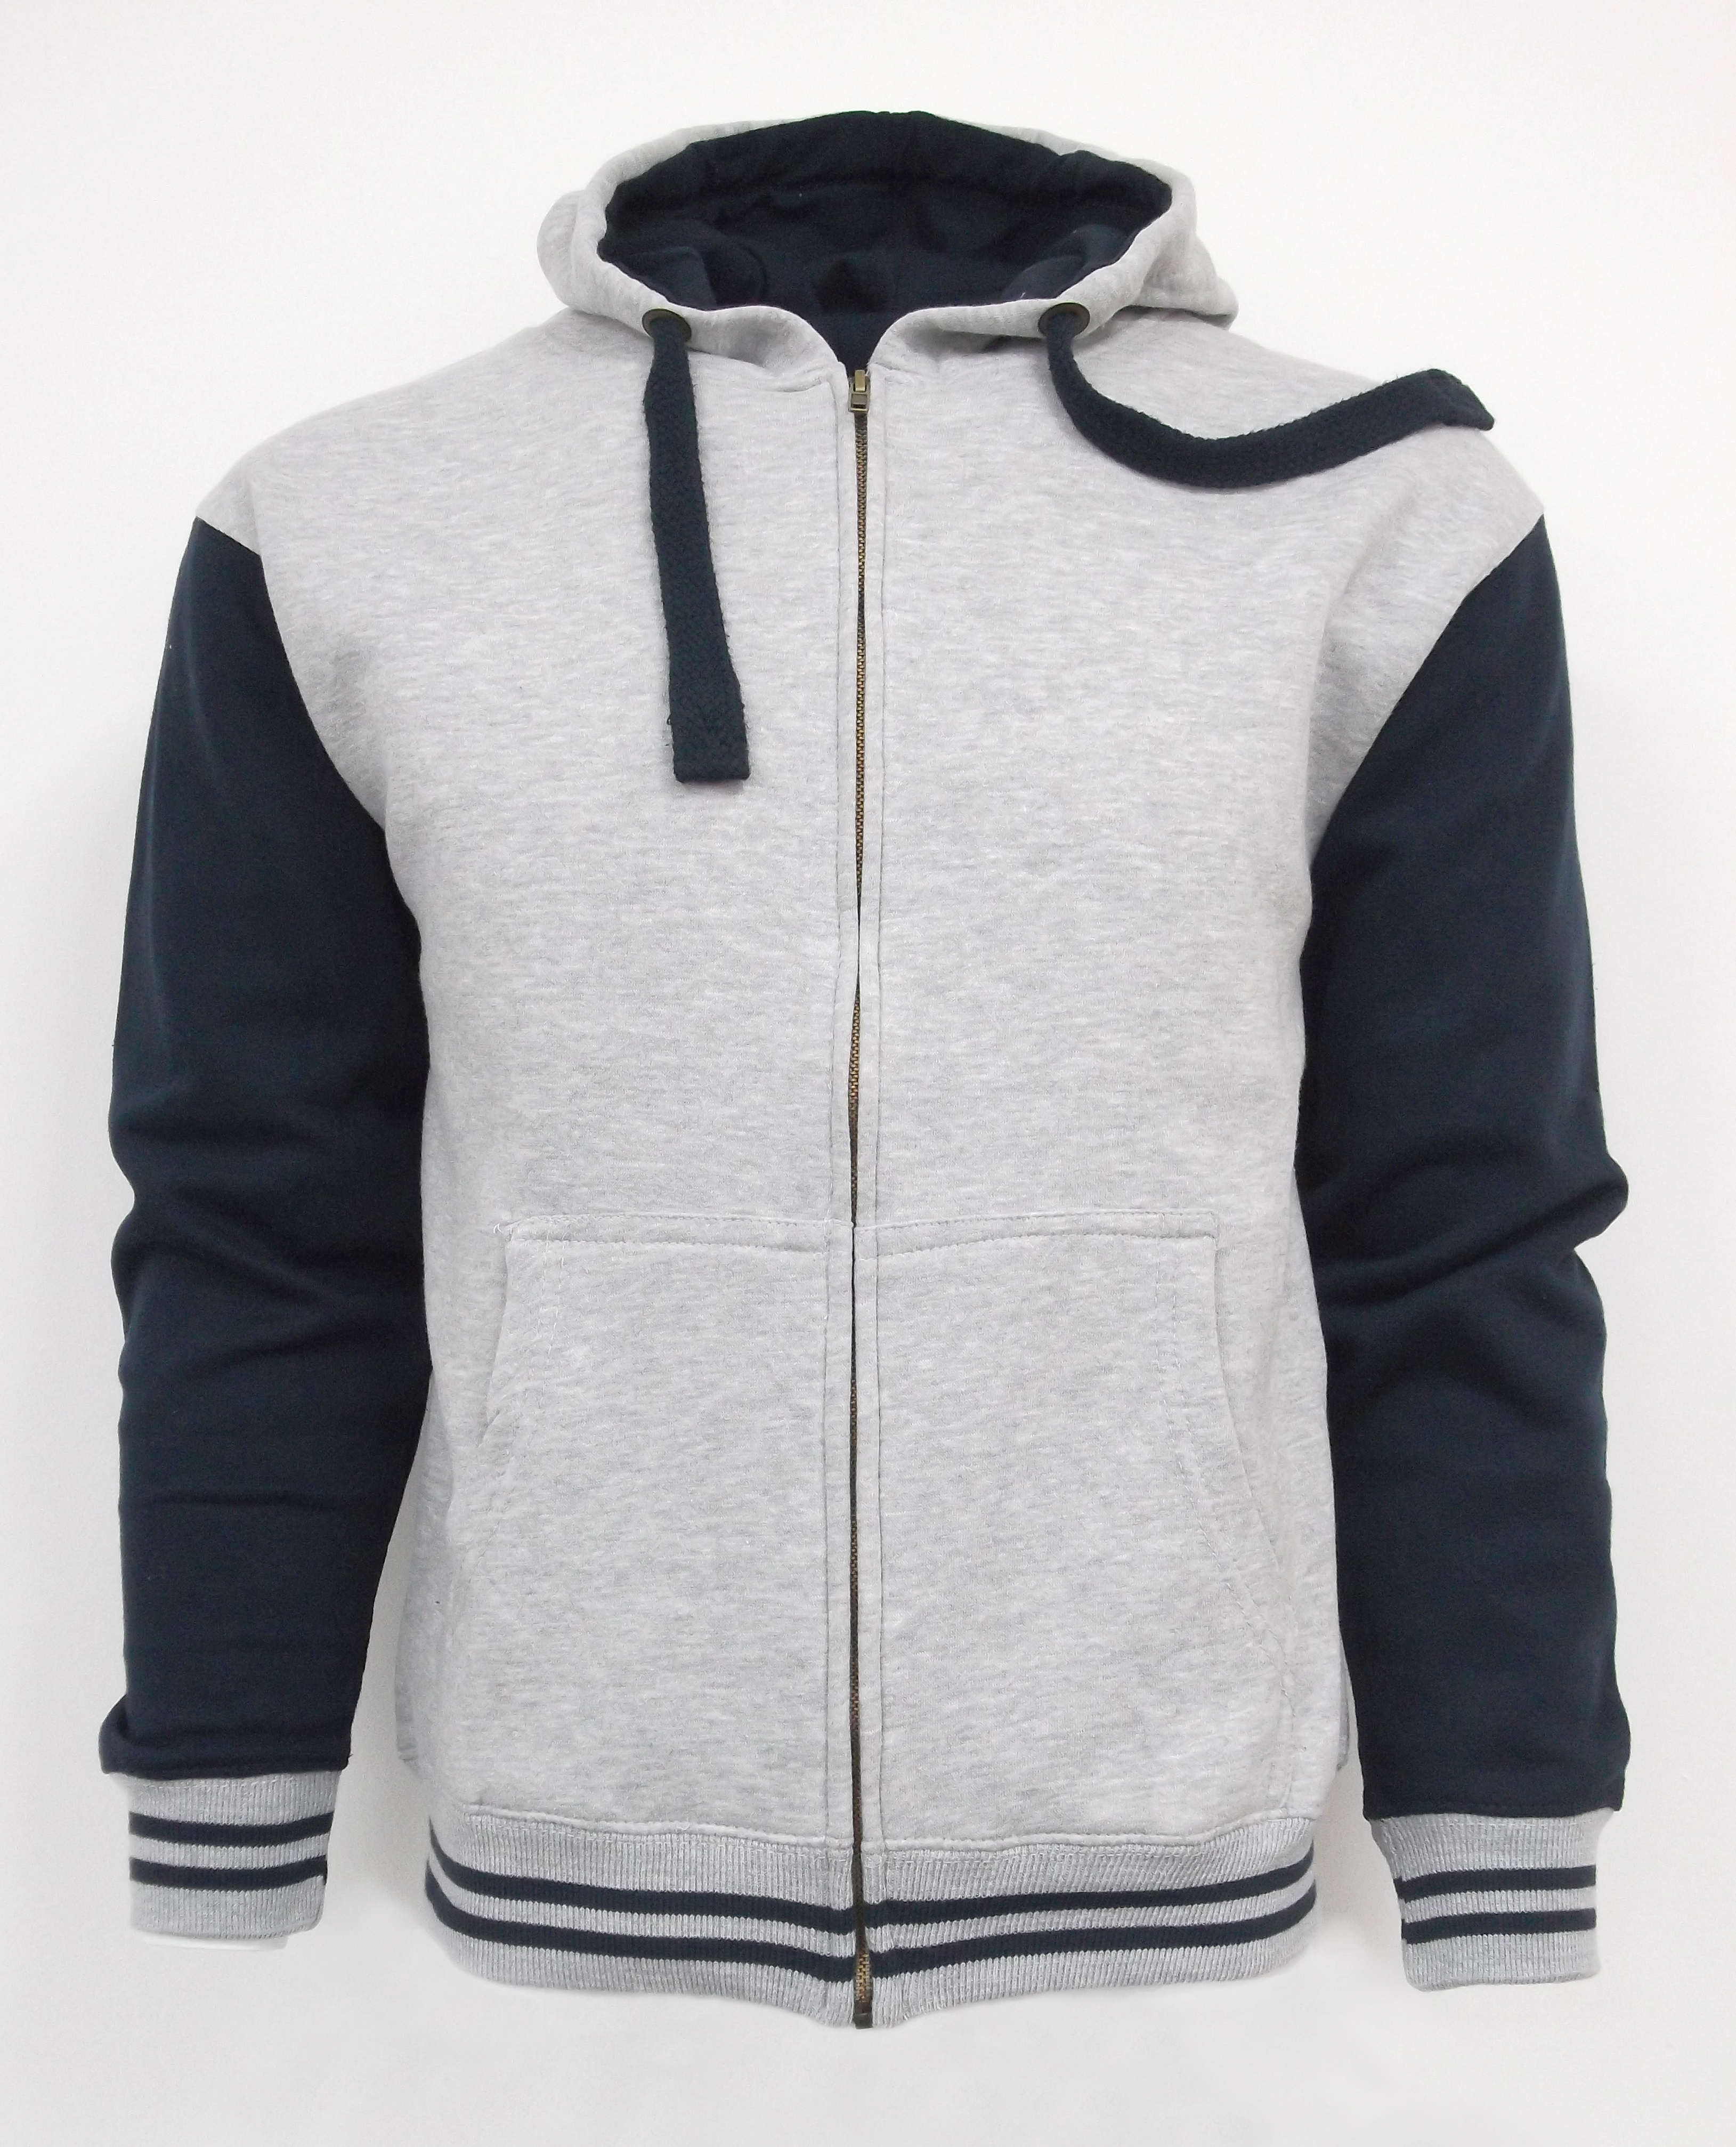 Advance Apparel AA020 Stripe Zip Hood